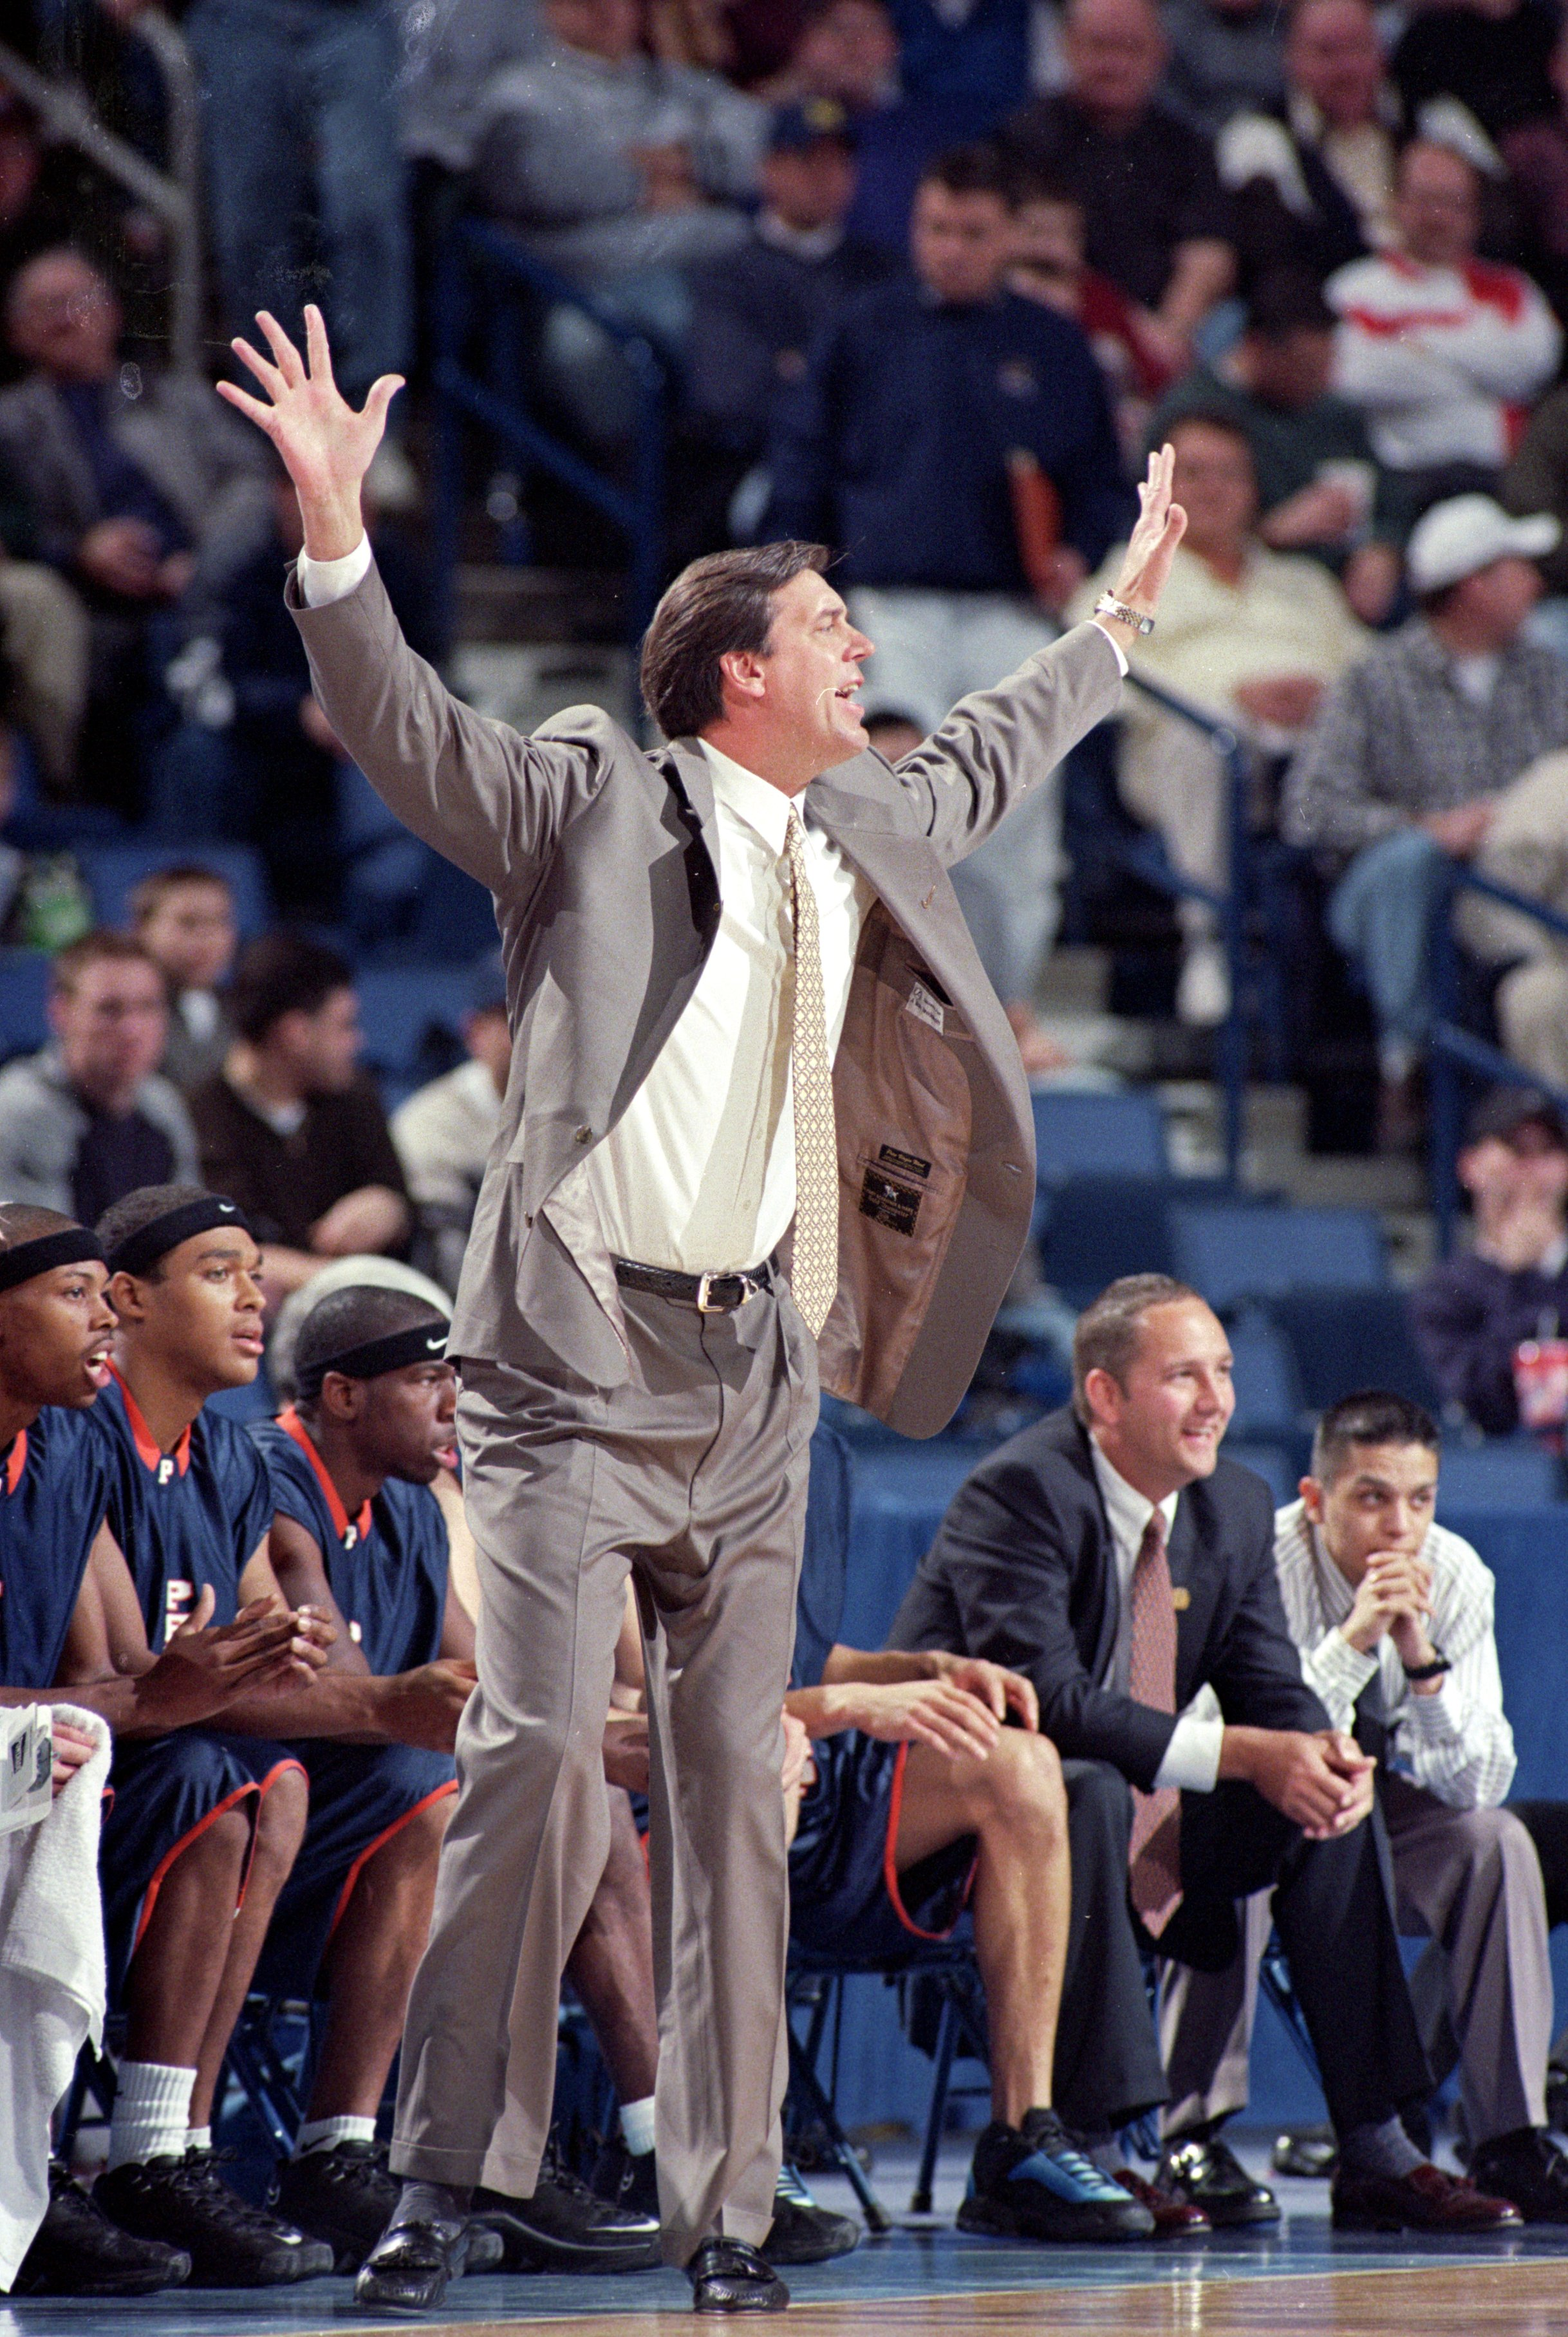 19 Mar 2000: Jan van Breda Kolff of the Pepperdine Waves reacts on  the sidelines during round one of the NCAA Tournament Game against the Oklahoma State Cowboys at the Marine Midland Arena in Buffalo, New York. The Cowboys defeated the Waves 75-67. Manda